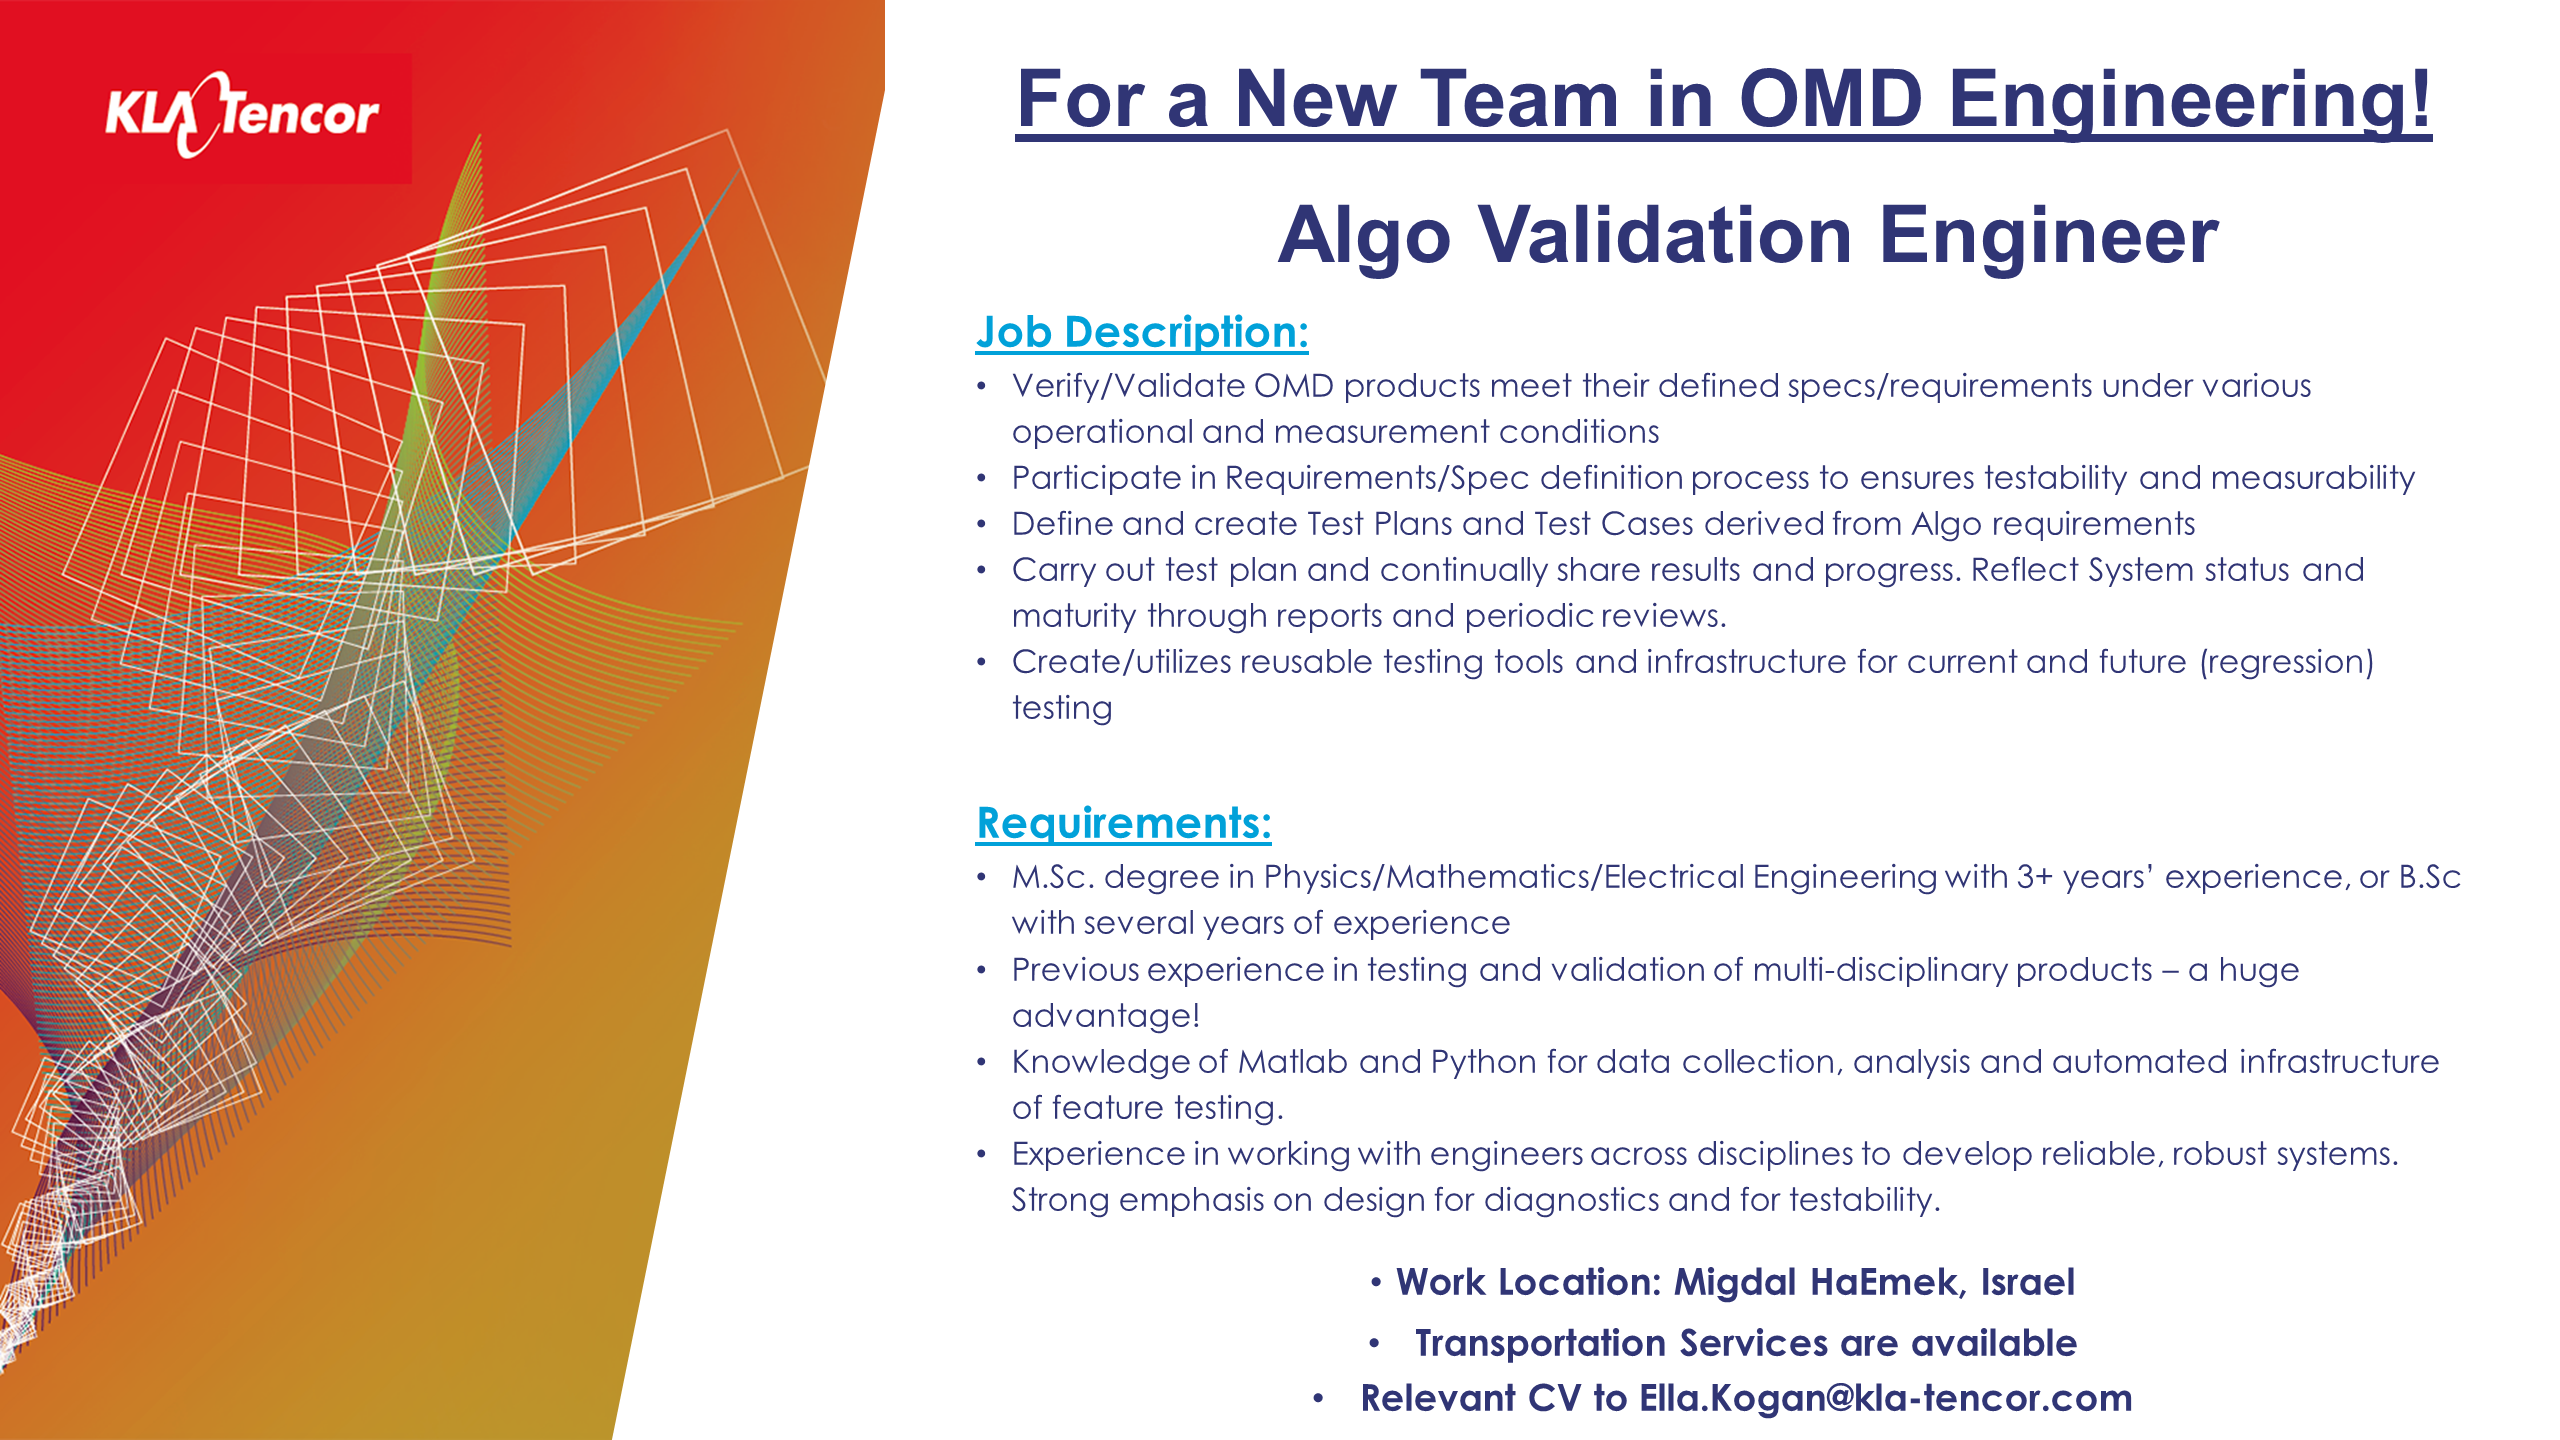 kla - algo validation engineer for a new team in omd engineering